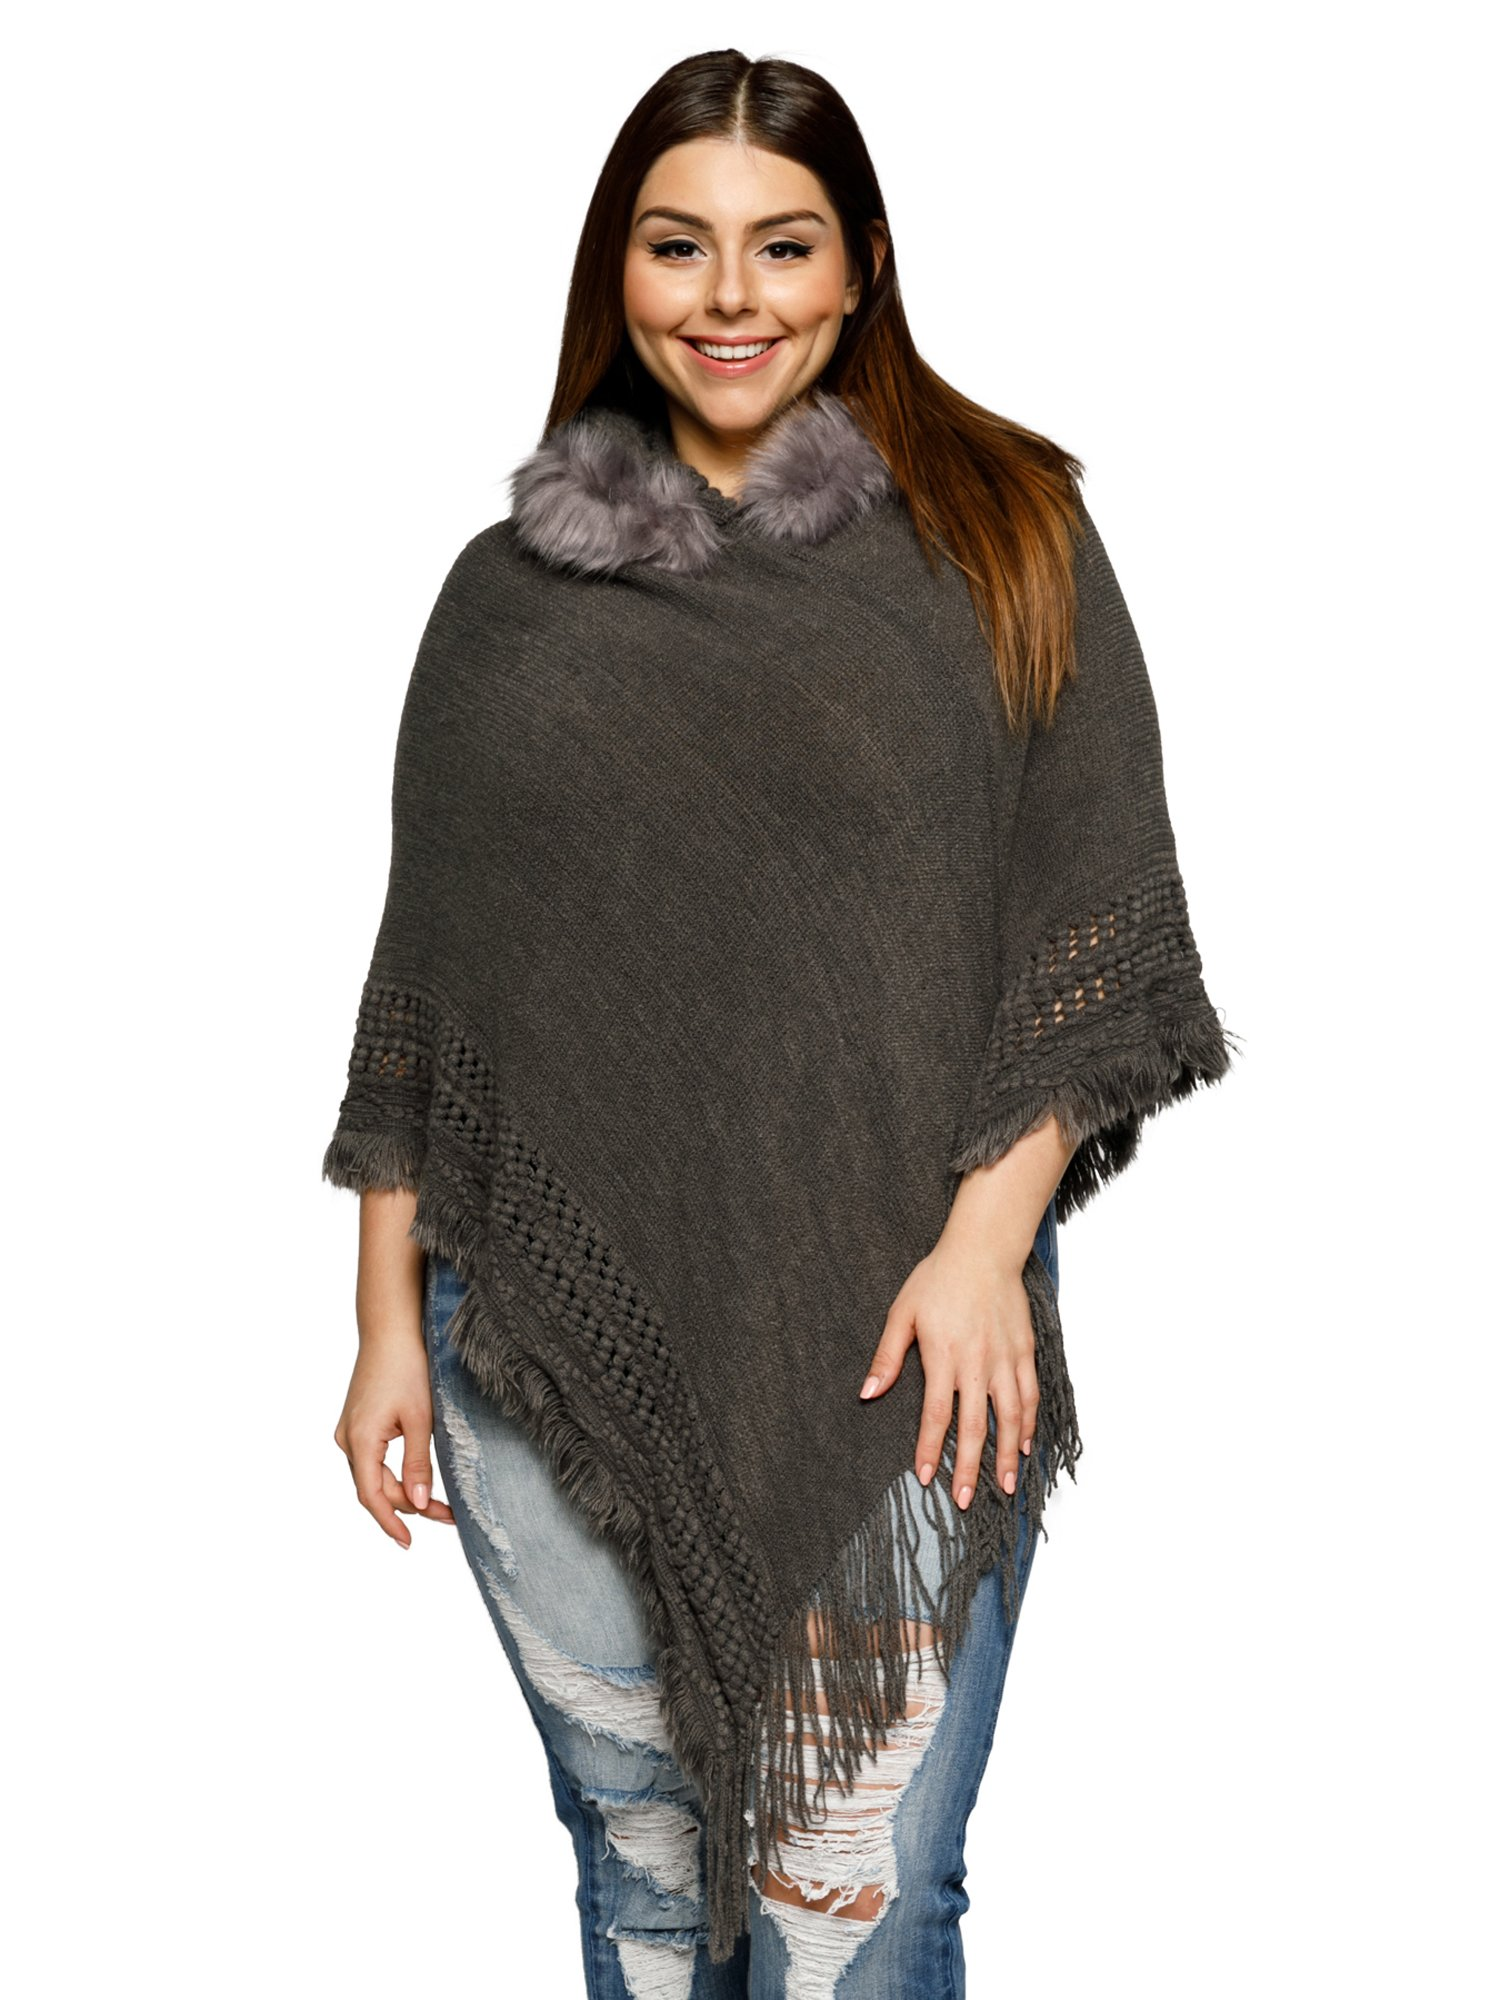 8f9da81c889 Xehar Women s Plus Size Asymmetrical Knit Fringe Faux Fur Trim ...